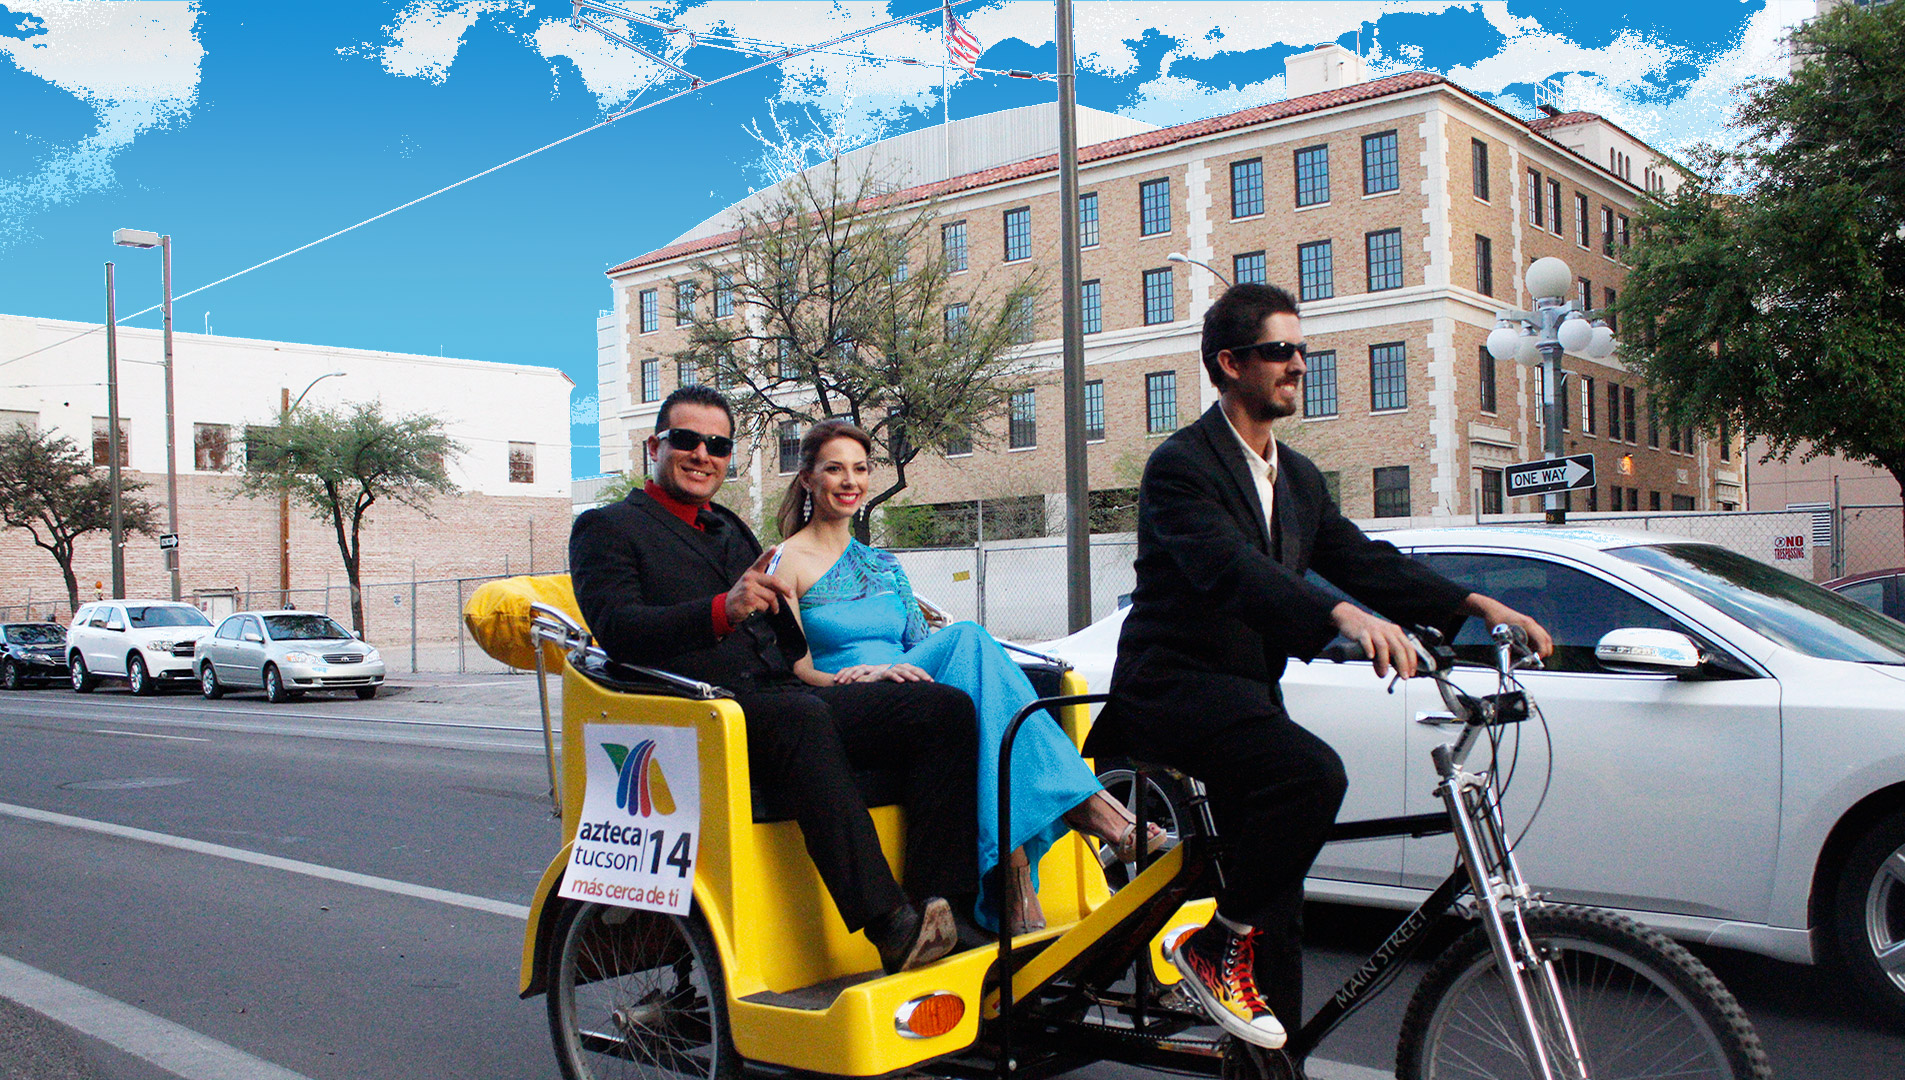 A young couple gets a ride through downtown Tucson on a pedicab.